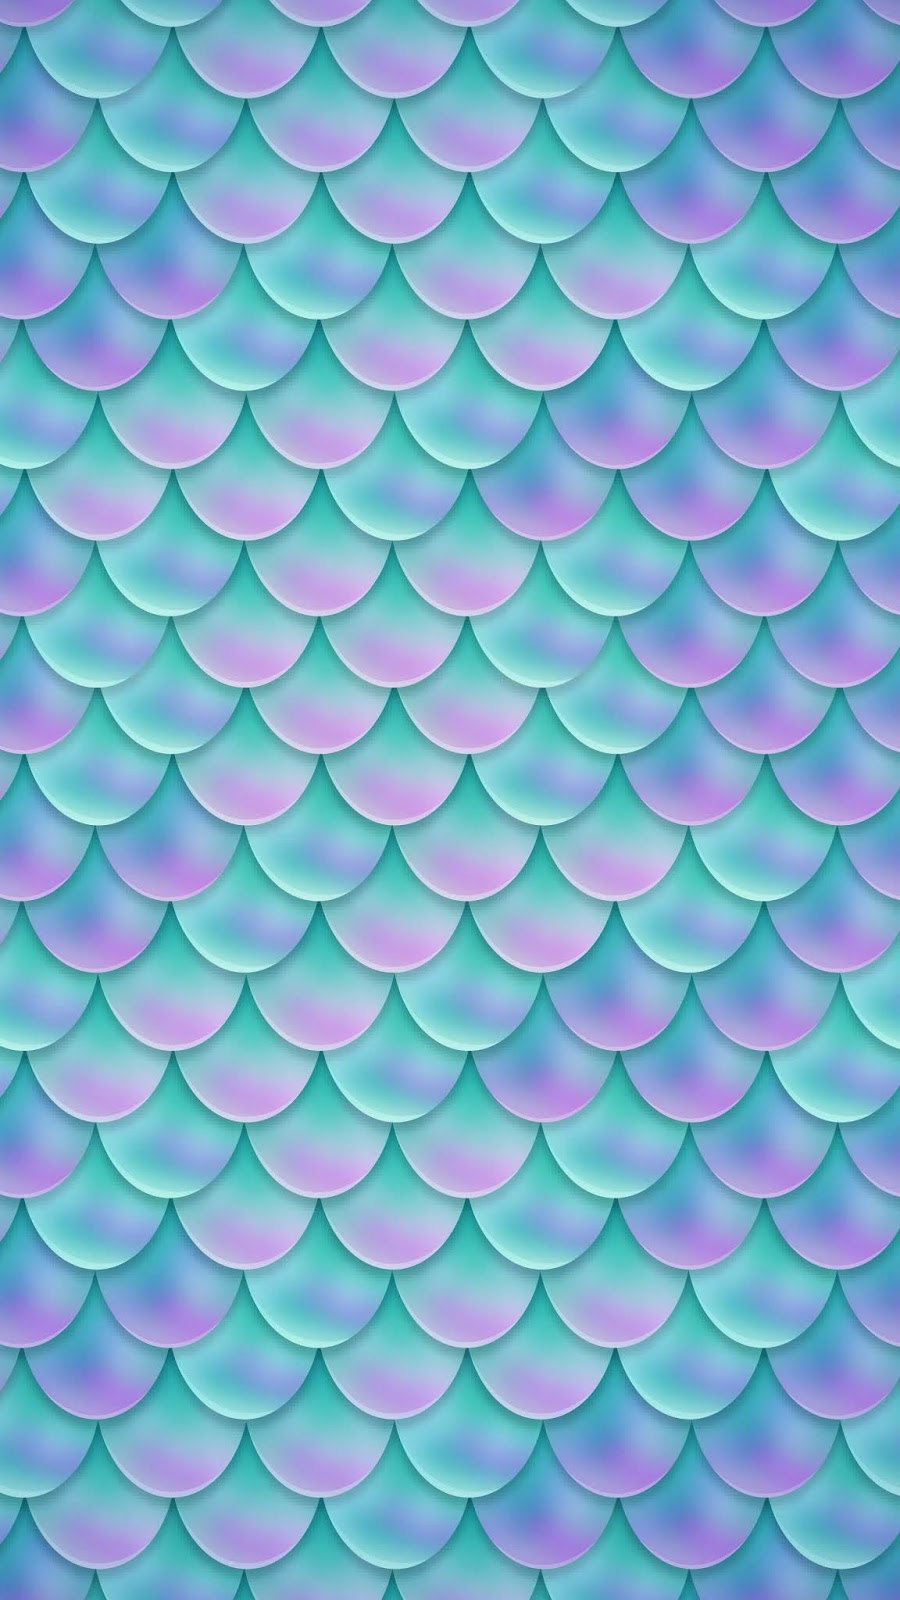 beautiful aesthetic pattern holographic wallpaper in 4k